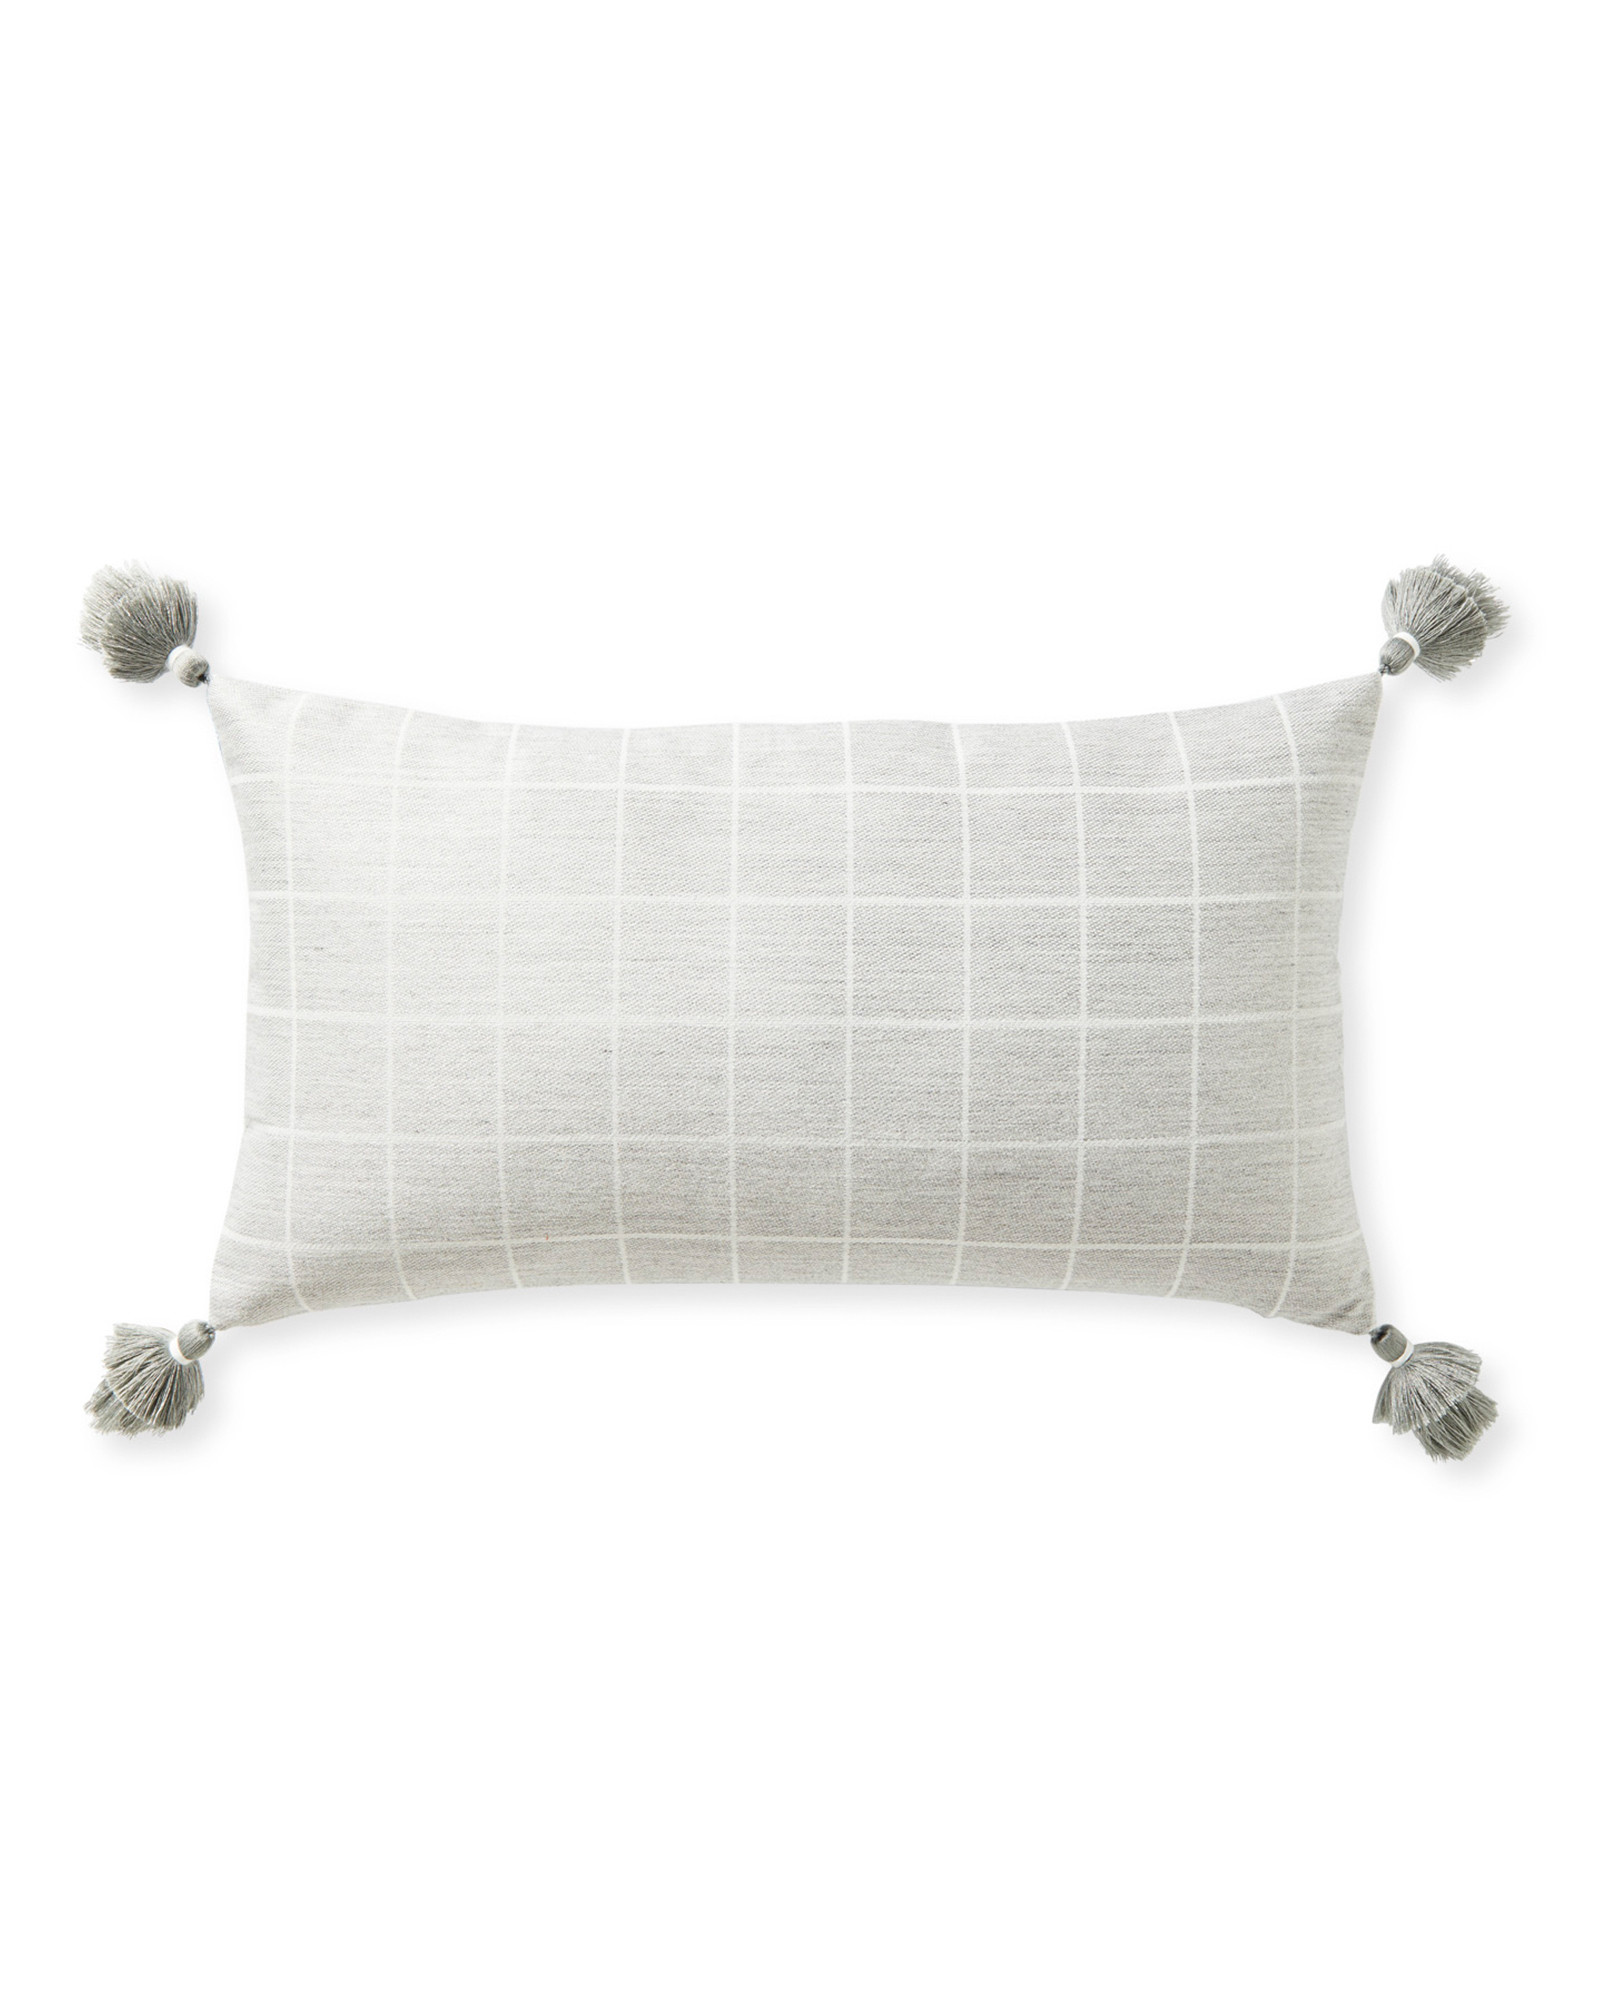 Mayne Pillow Cover, Fog